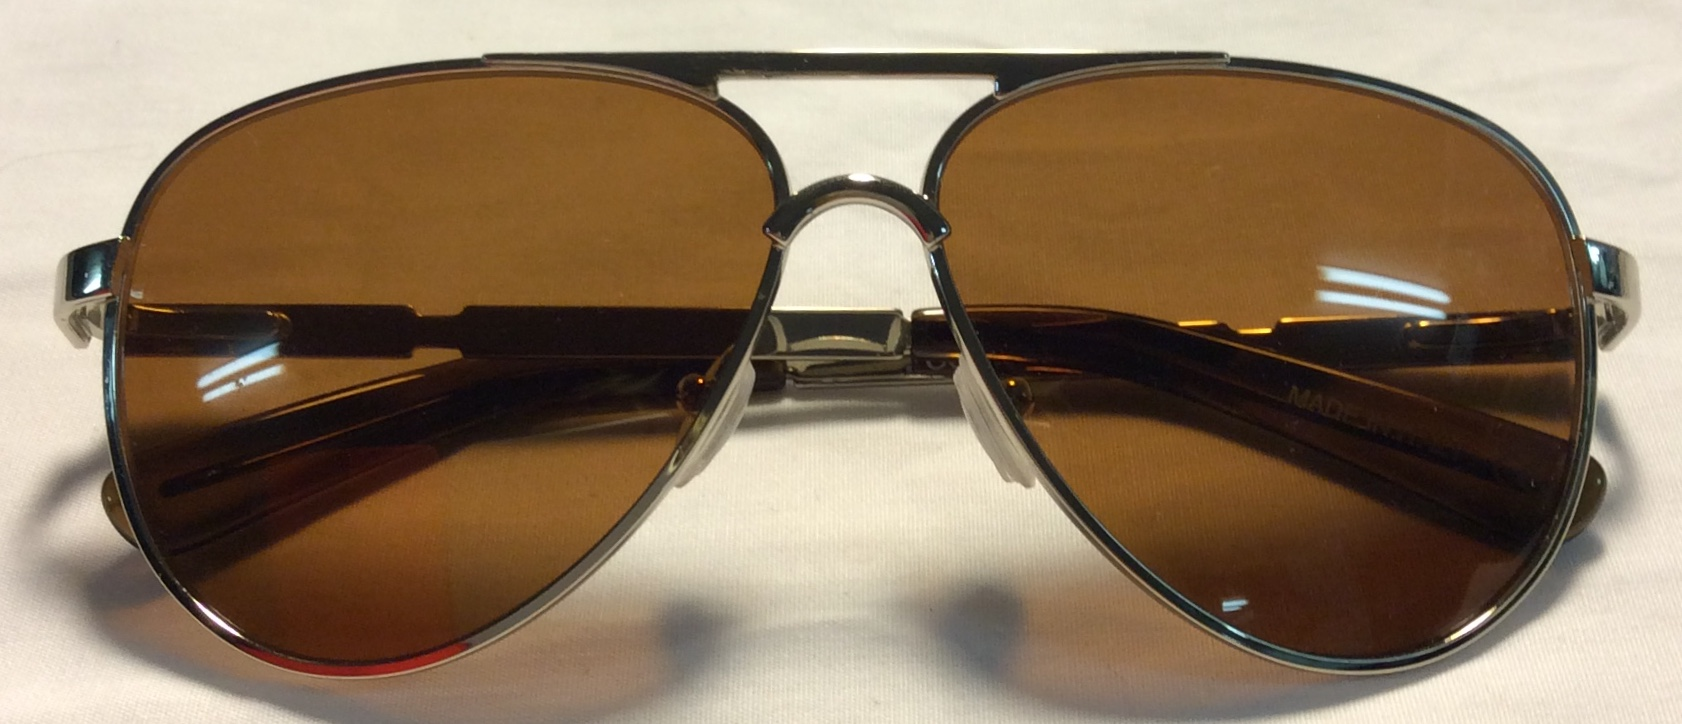 Initium Silver metal frames, brown